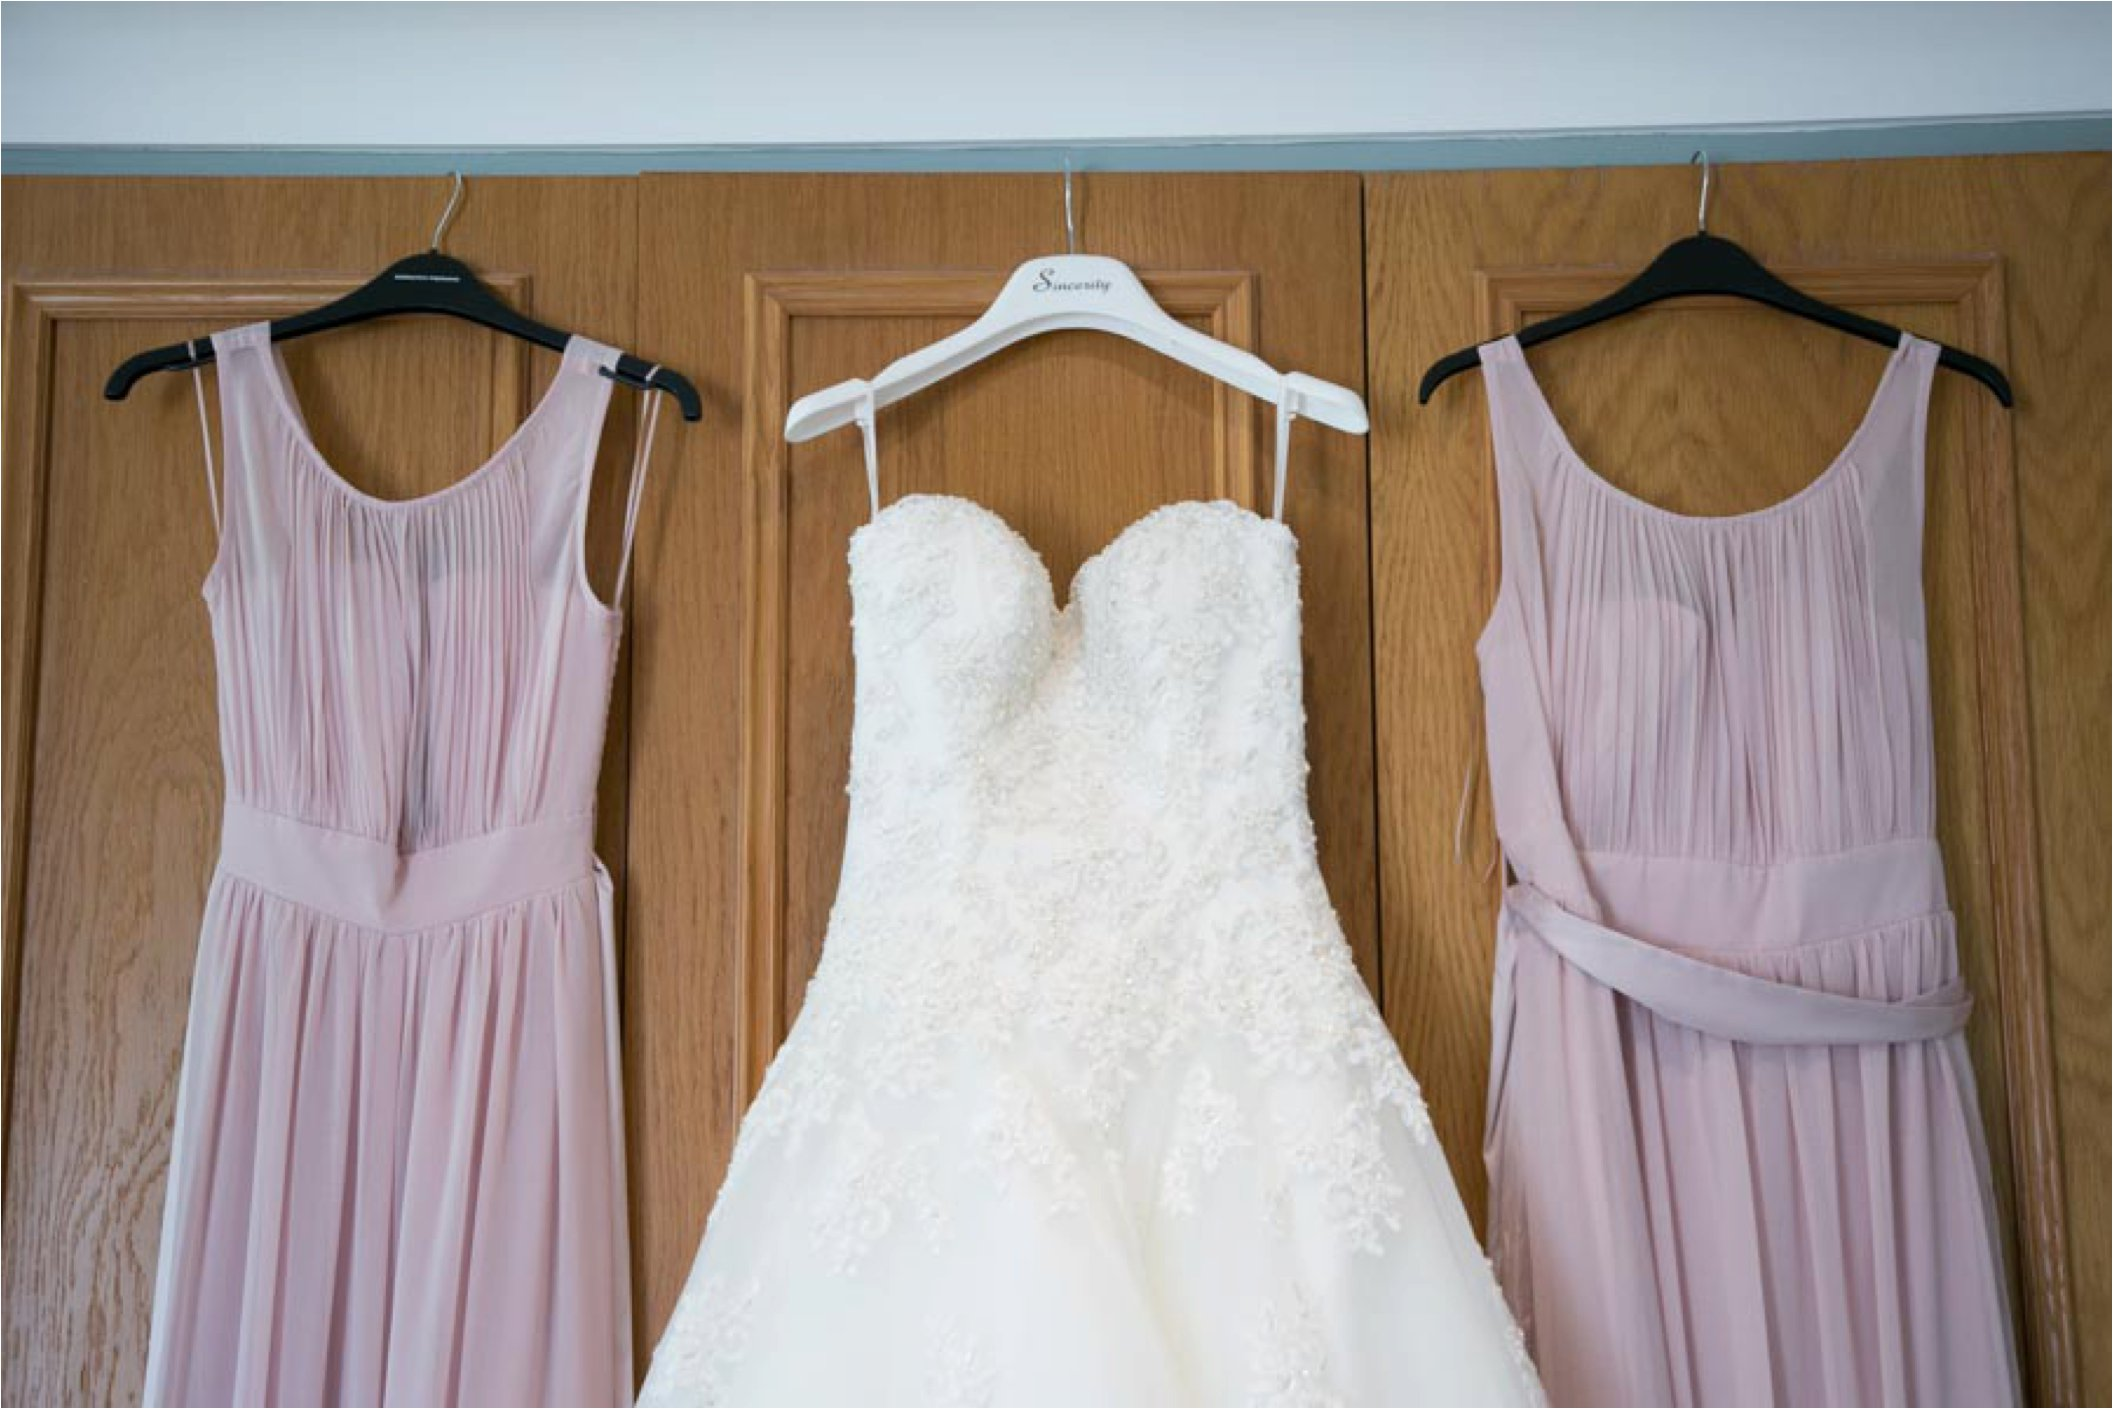 ducky pink bridesmaid dressed hanging up with wedding dress